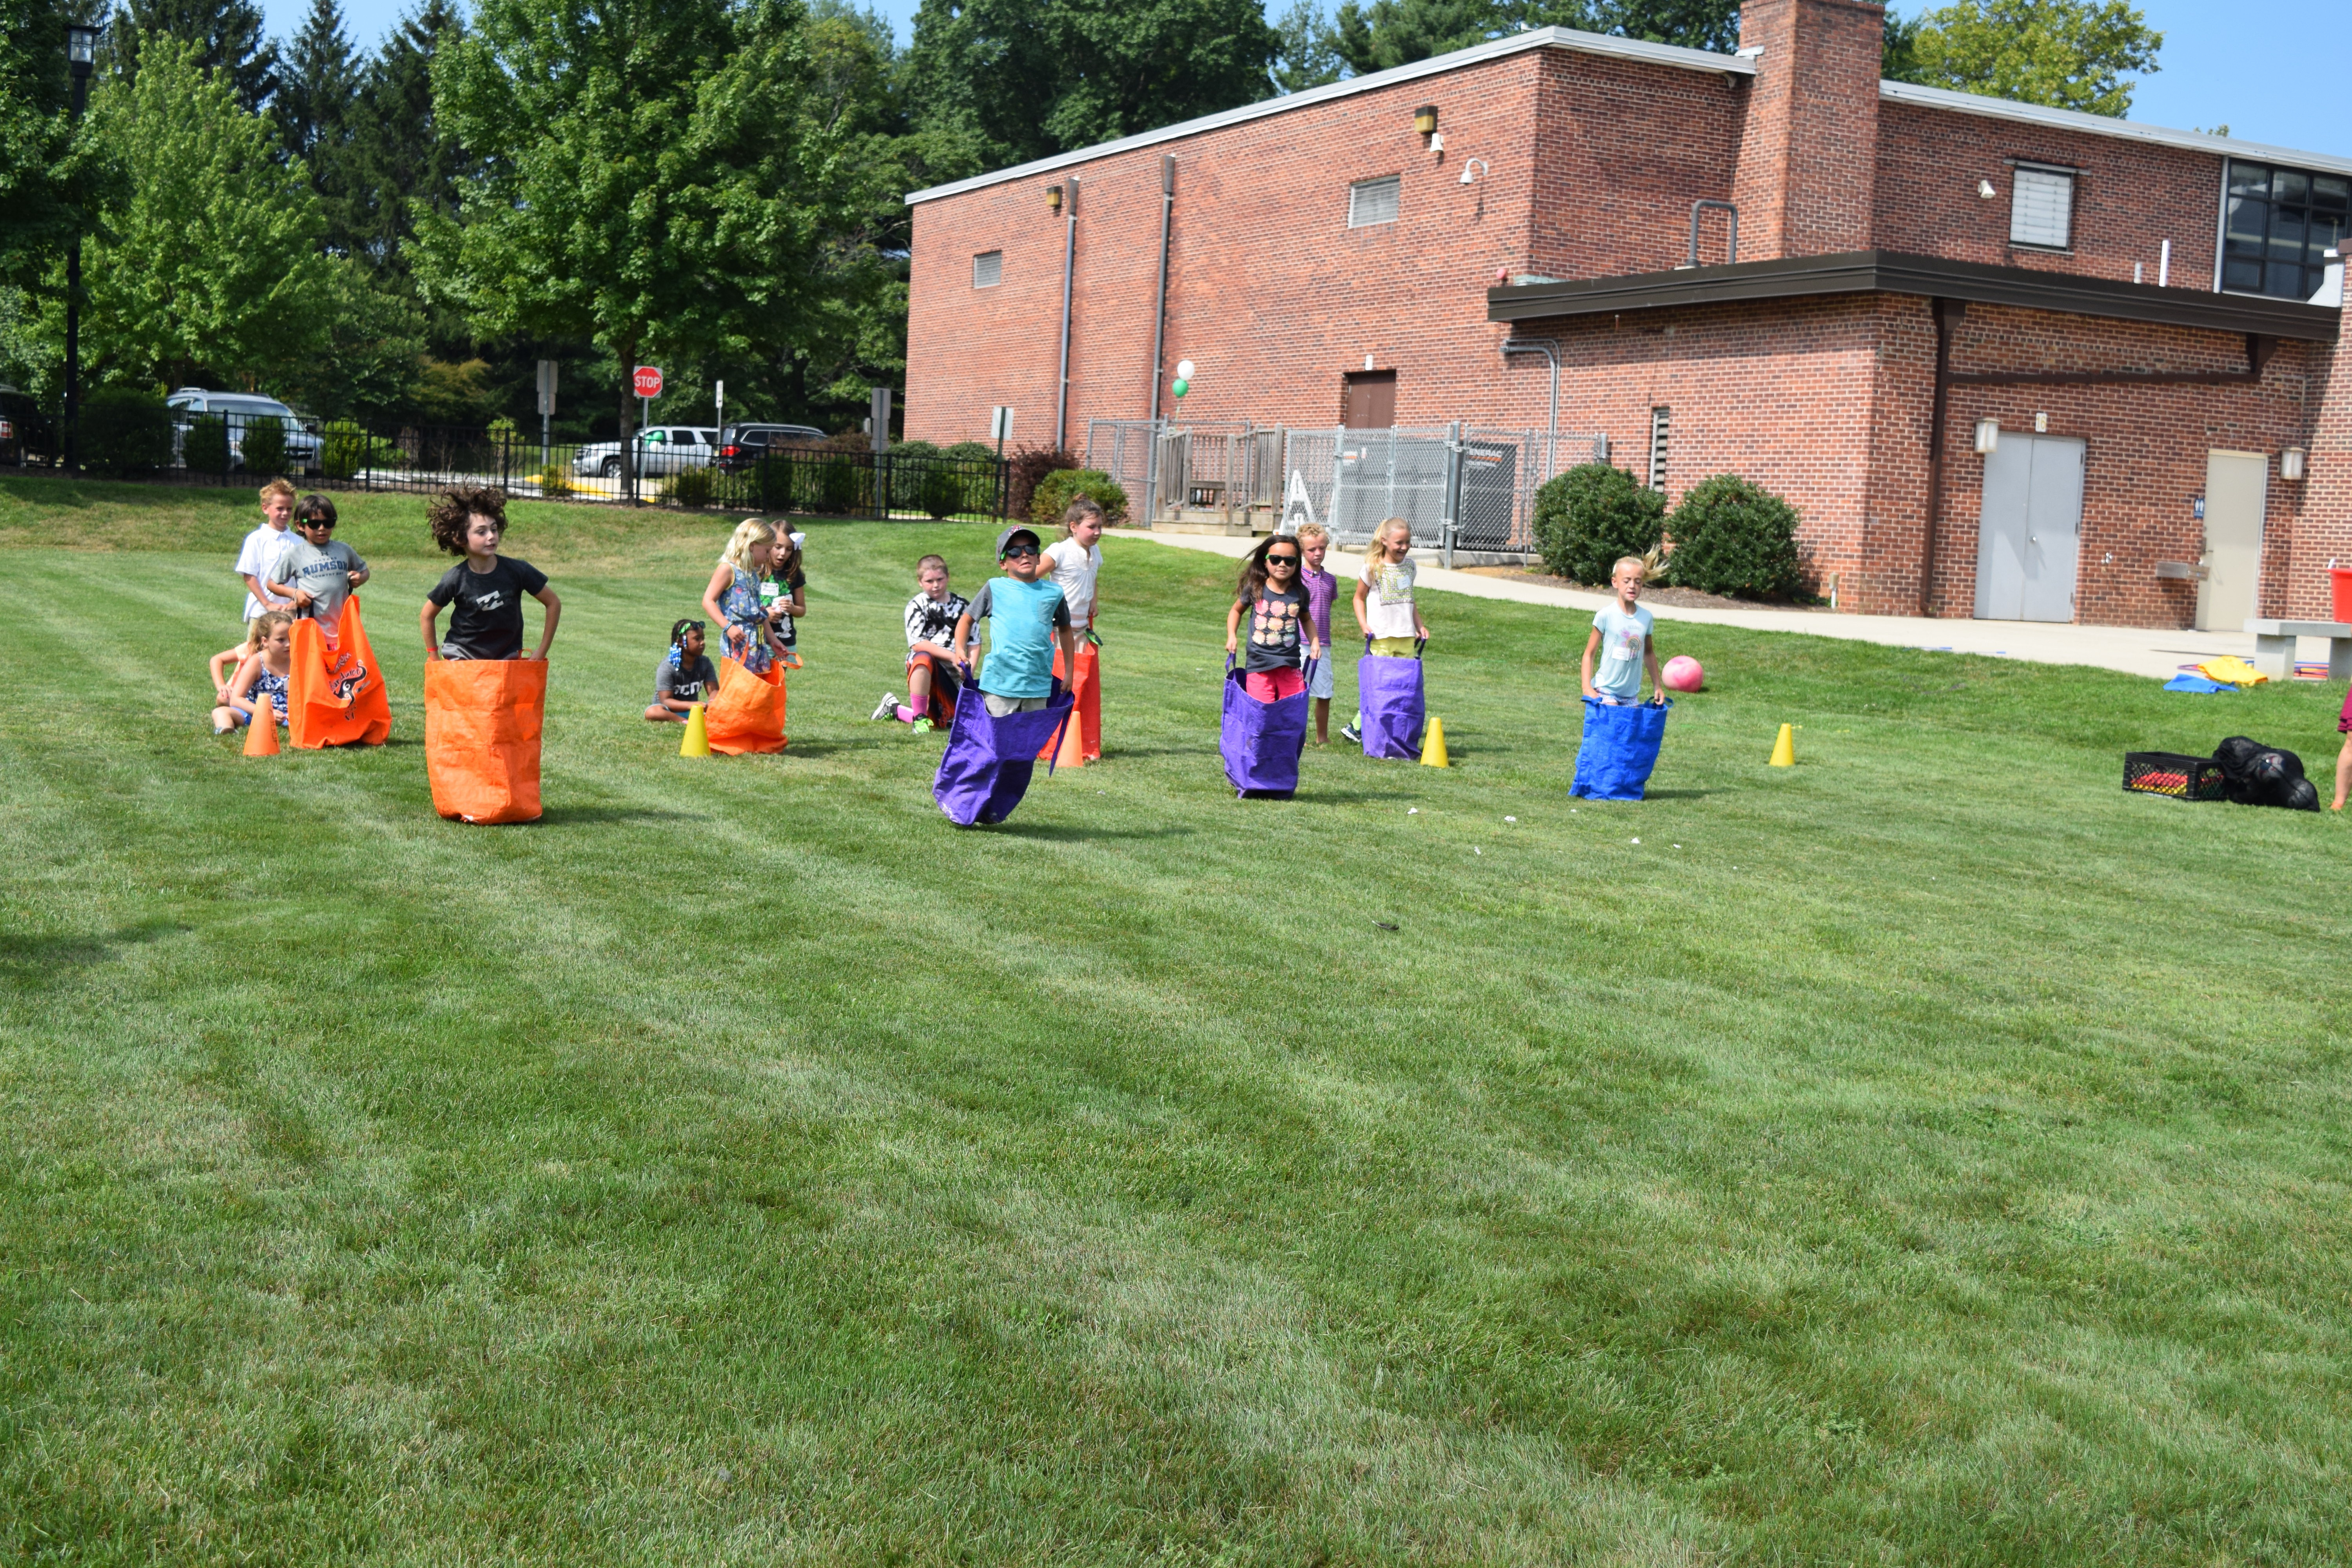 Students on a field in a potato sack race